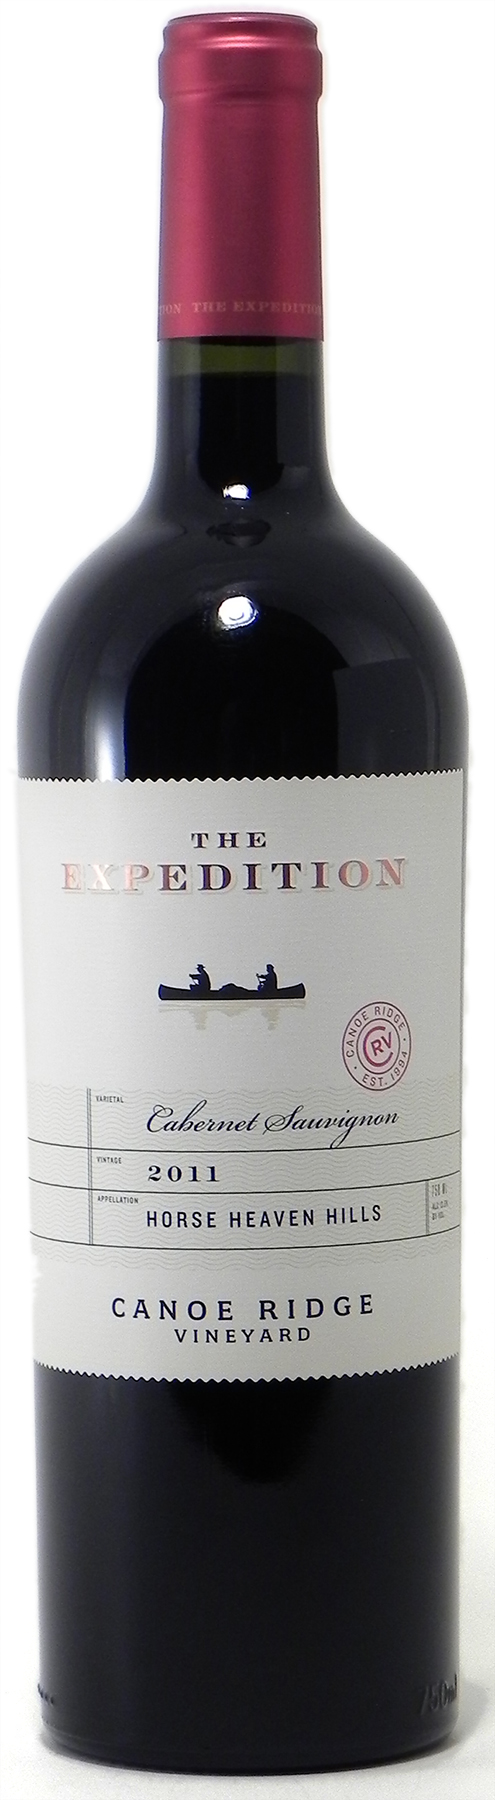 "2011 Canoe Ridge ""The Expedition"" Cabernet Sauvignon"